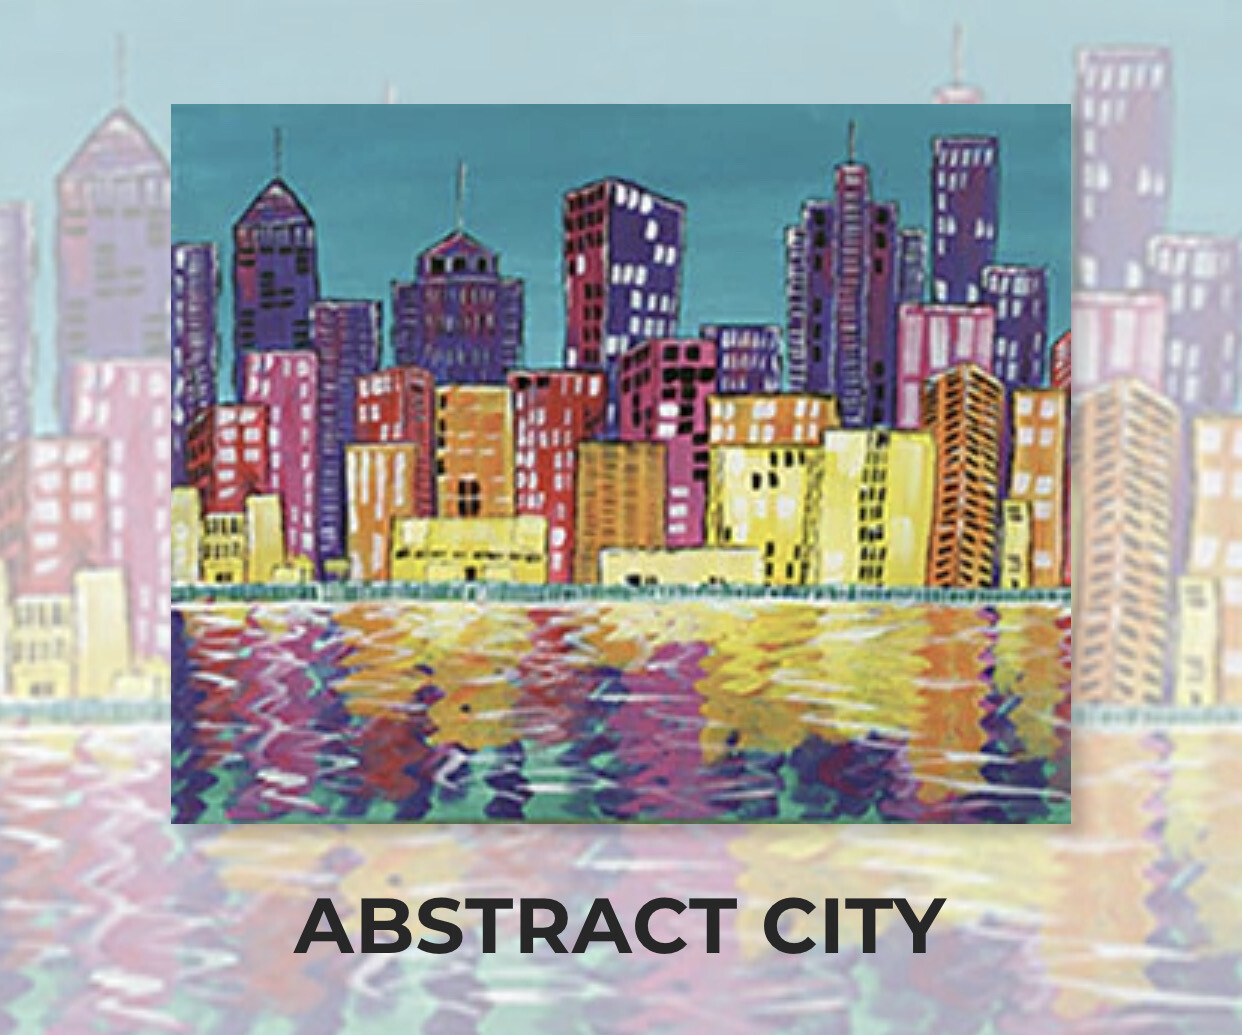 Abstract City ADULT Acrylic Paint On Canvas DIY Art Kit - 3 Week Special Order